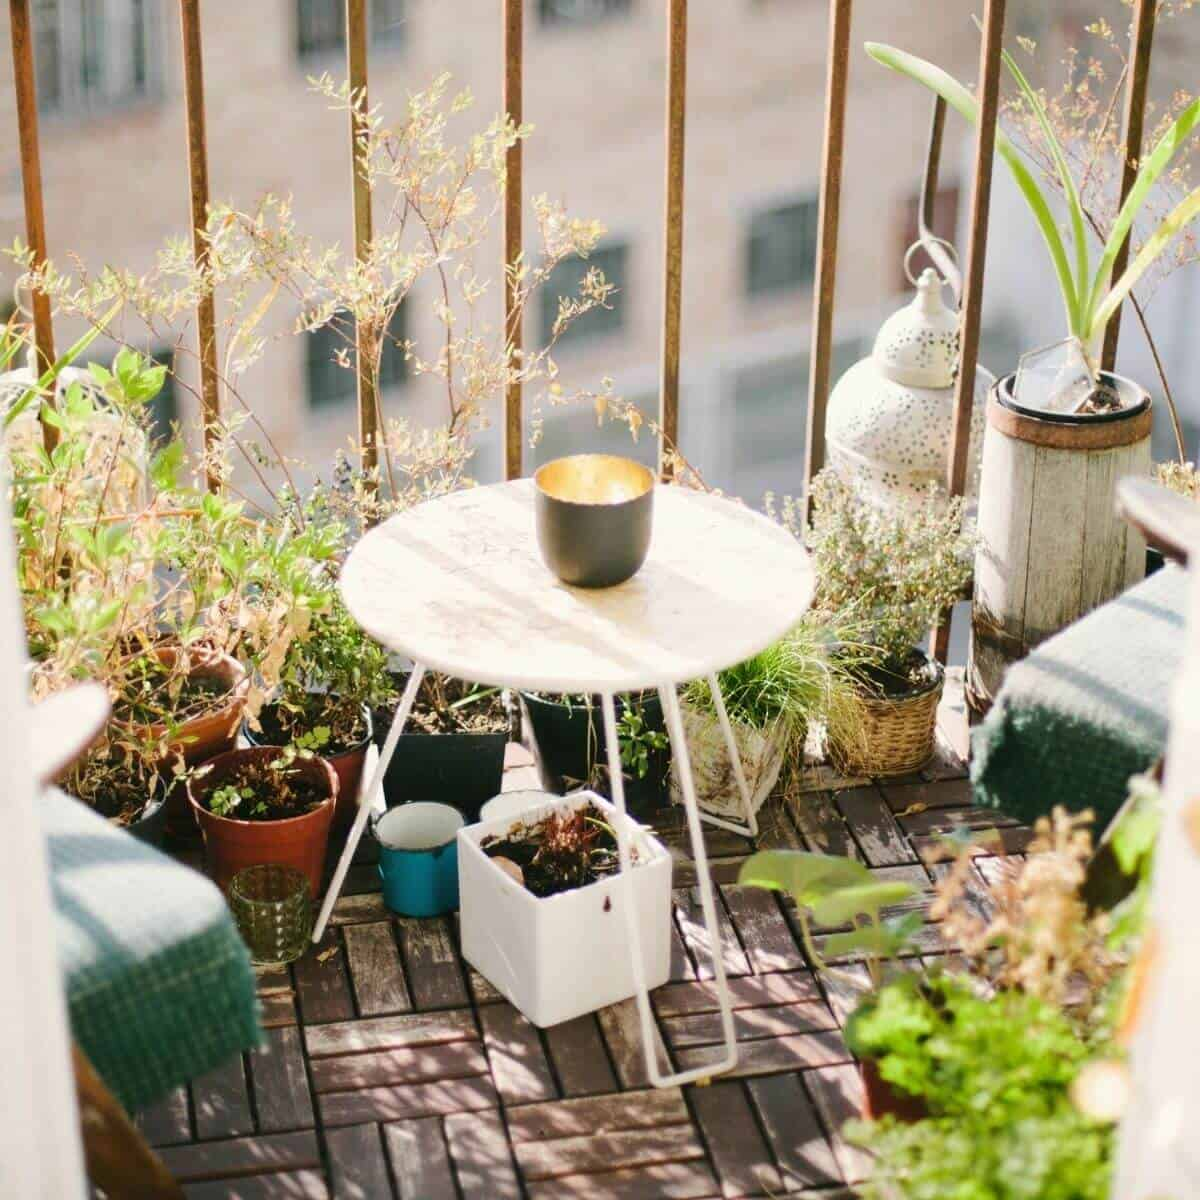 Balcony with plants, a candle, and table.